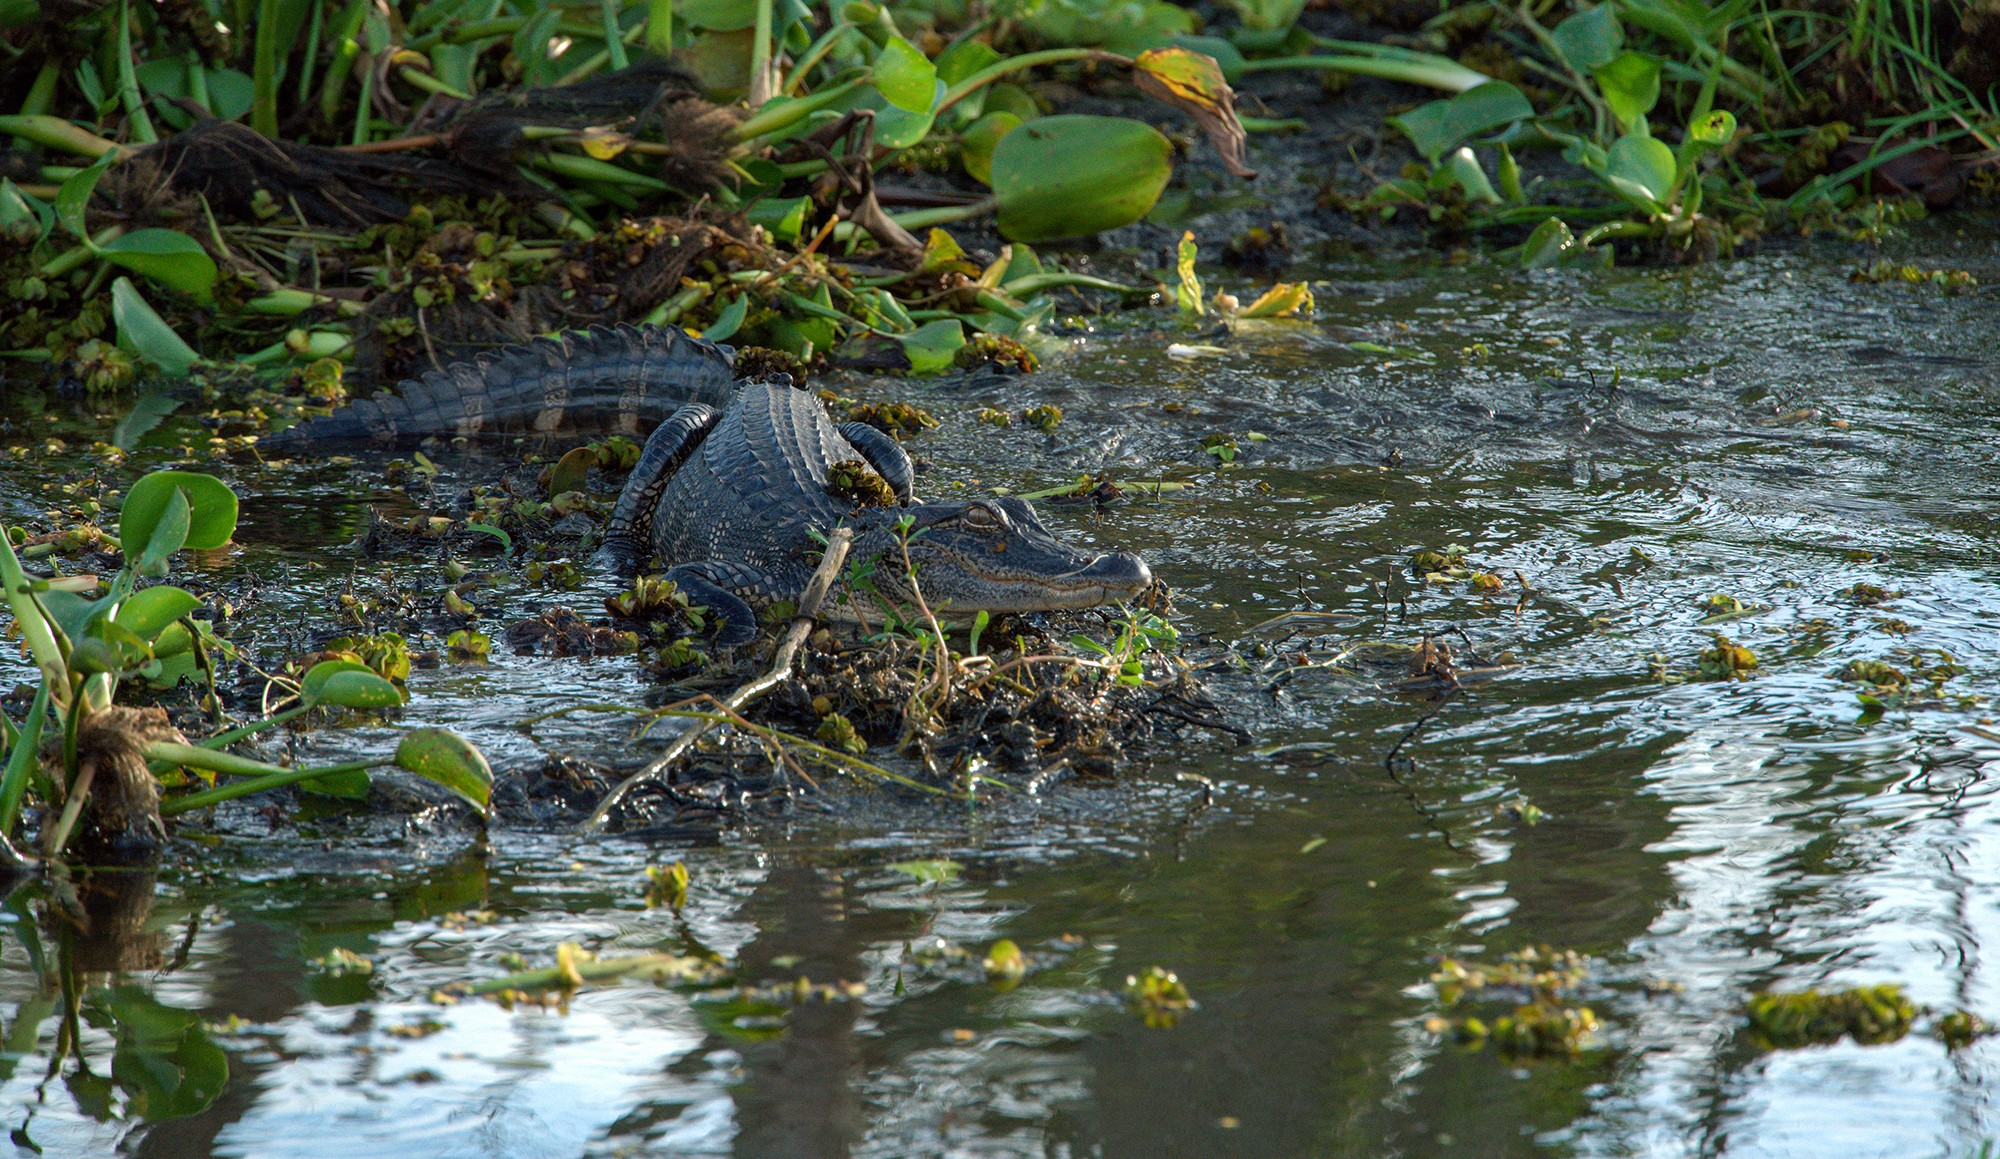 alligator on shoreline in swampy area